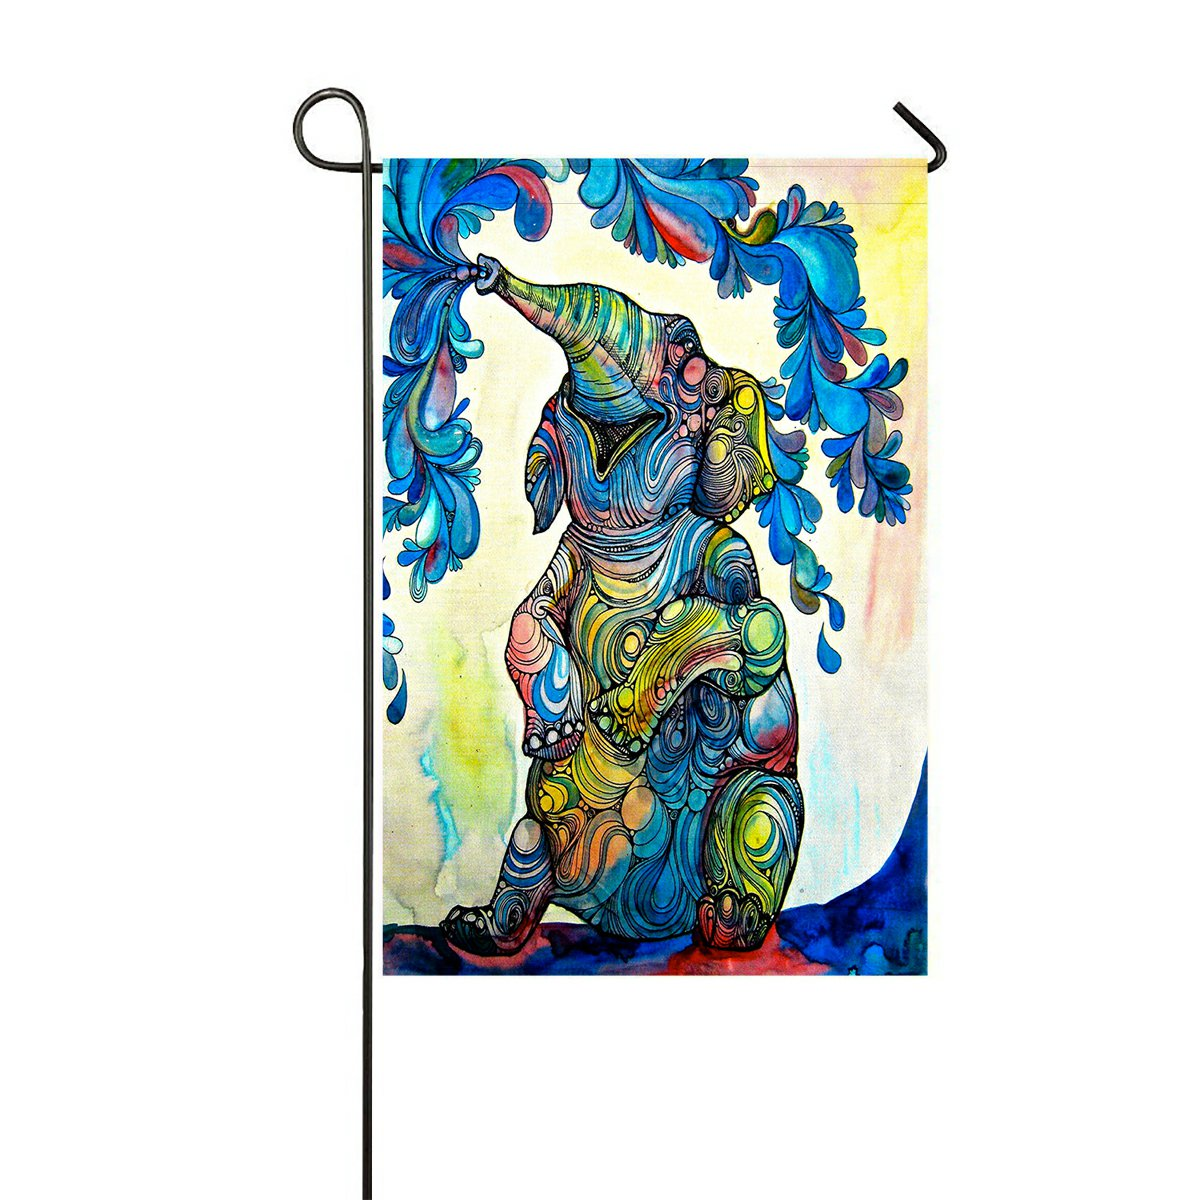 GCKG African Elephant Garden Flag Outdoor Flag Yard Decoration 28x40 inches - image 1 of 1